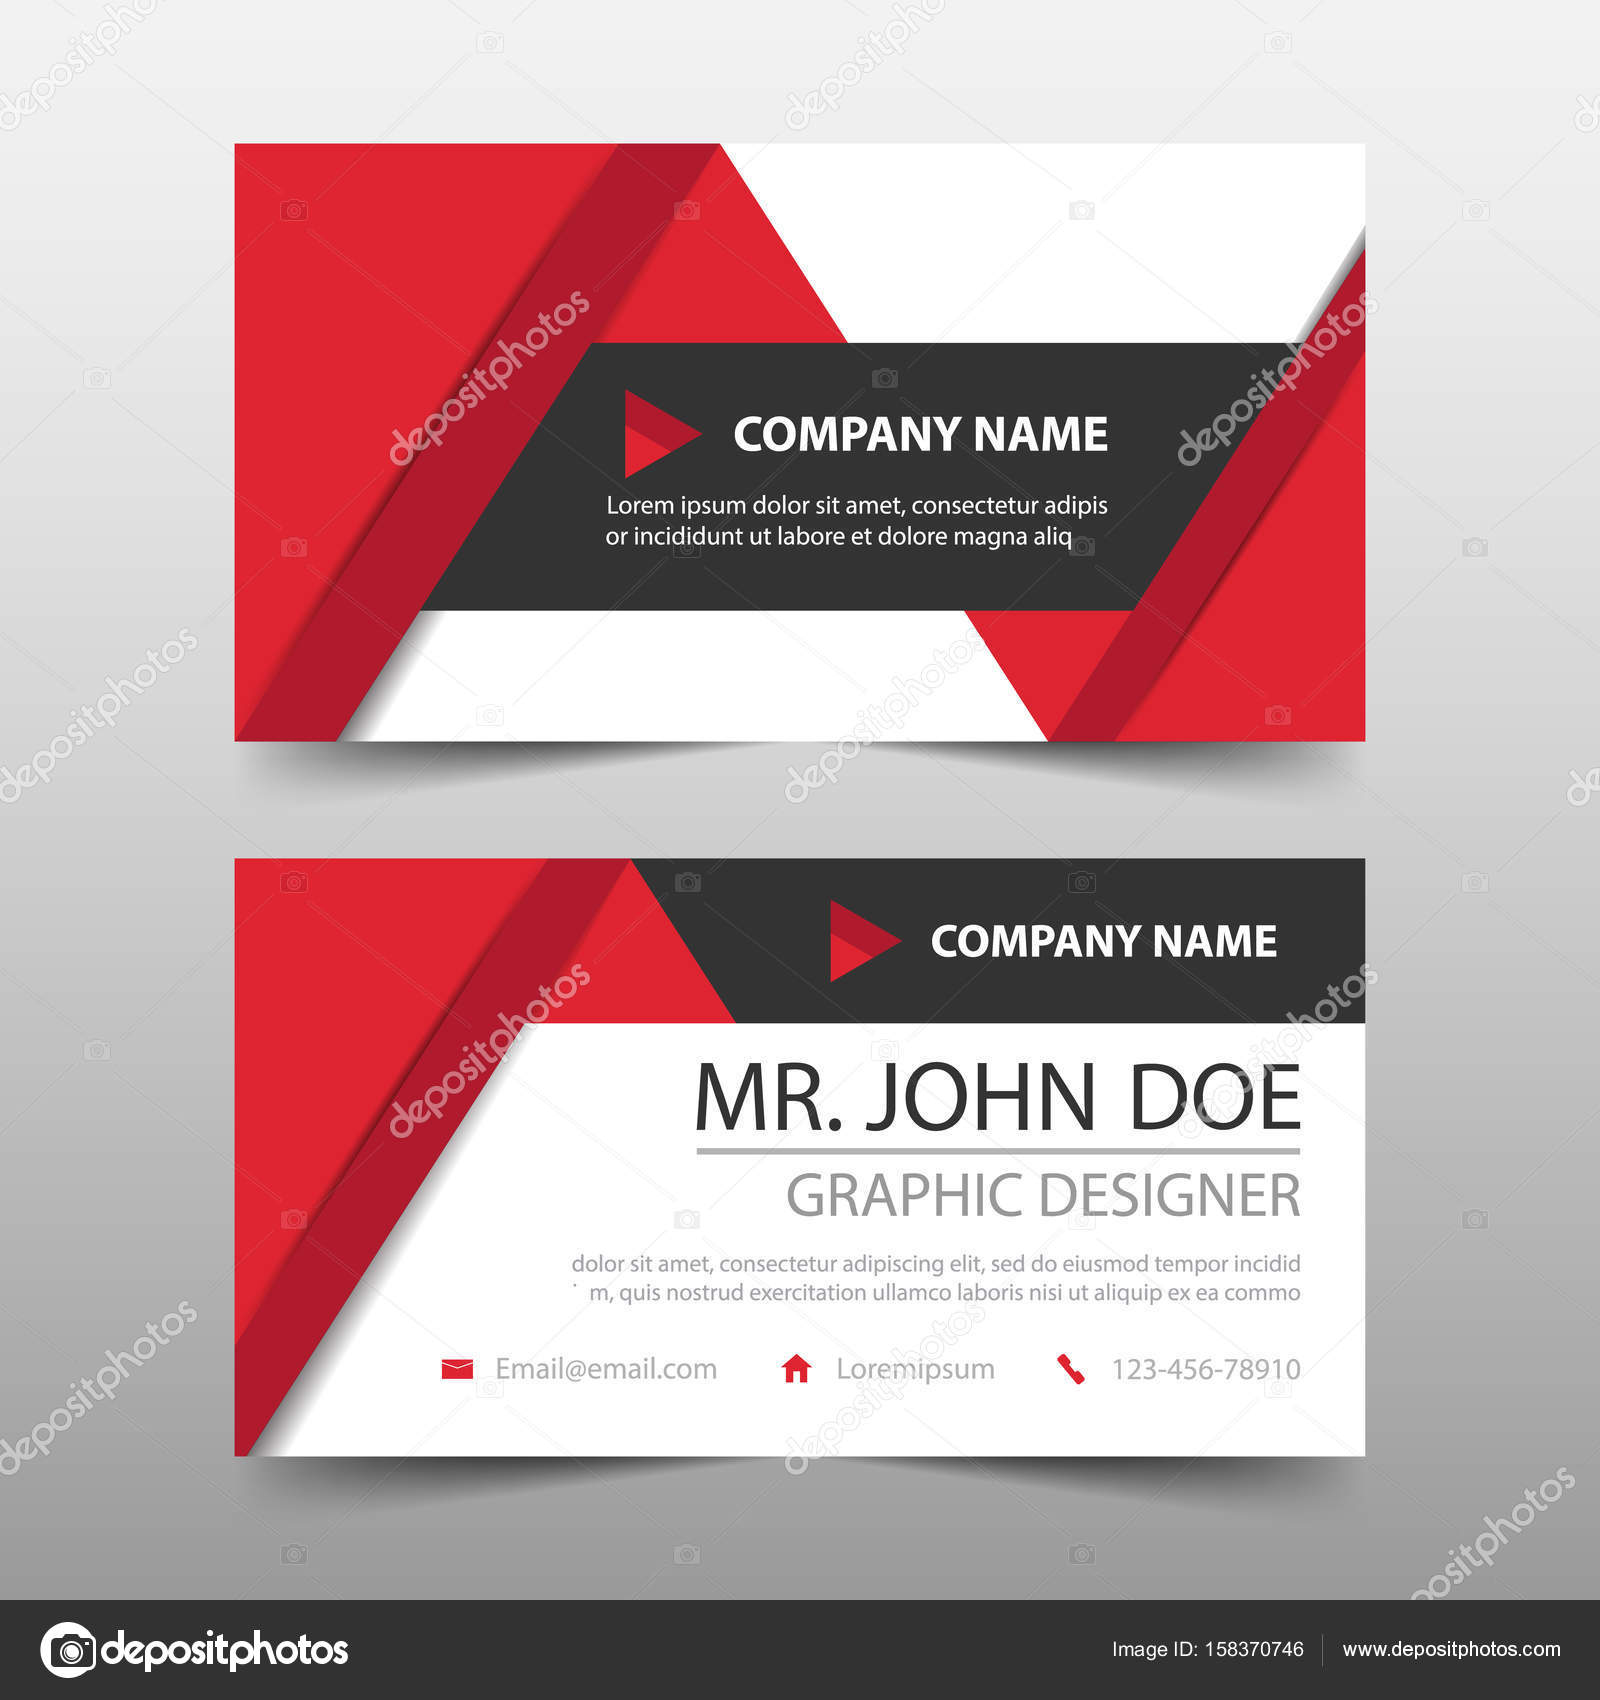 Red triangle corporate business card name card template horizontal red triangle corporate business card name card template horizontal simple clean layout design template fbccfo Choice Image